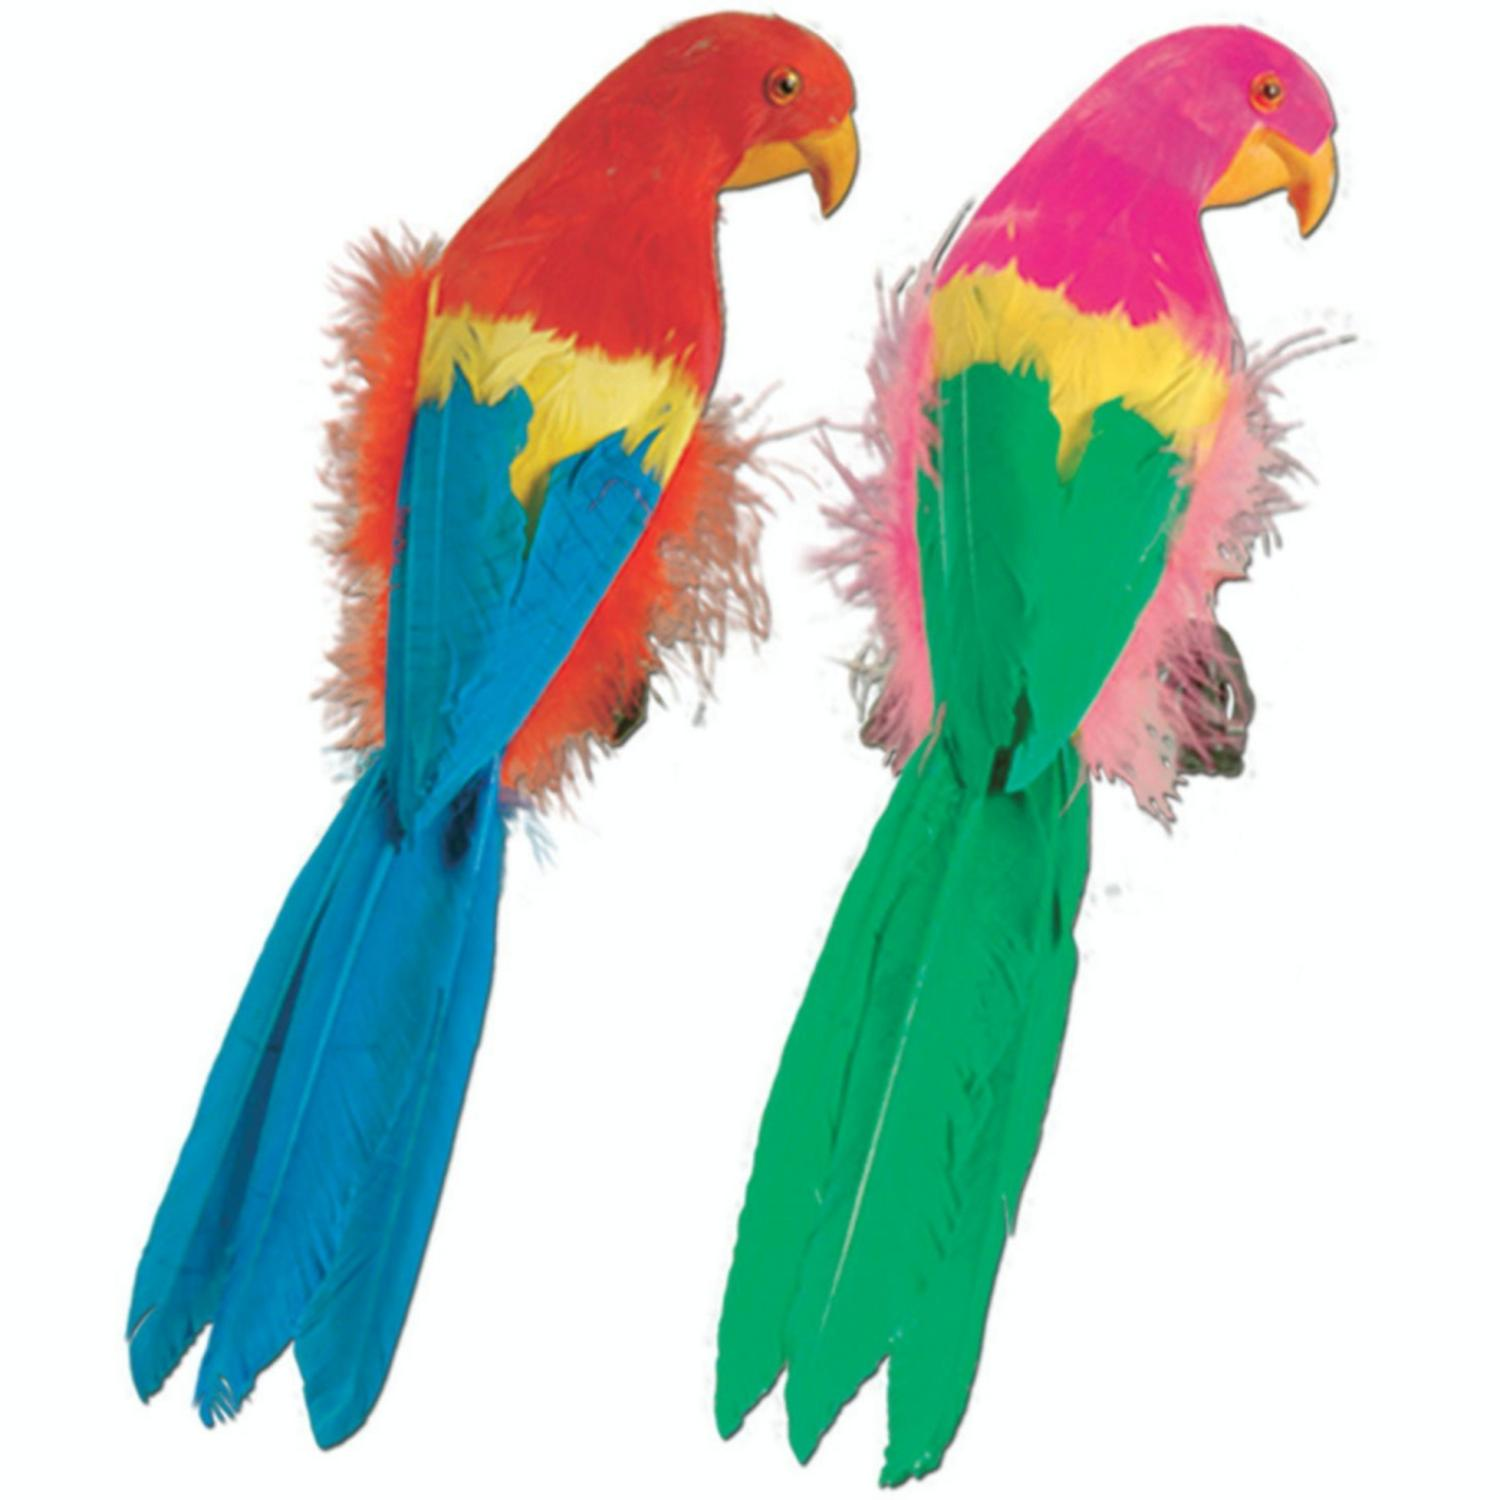 Pack of 6 Vibrant Brightly Colored Feathered Parrot Luau Party Decorations 12""